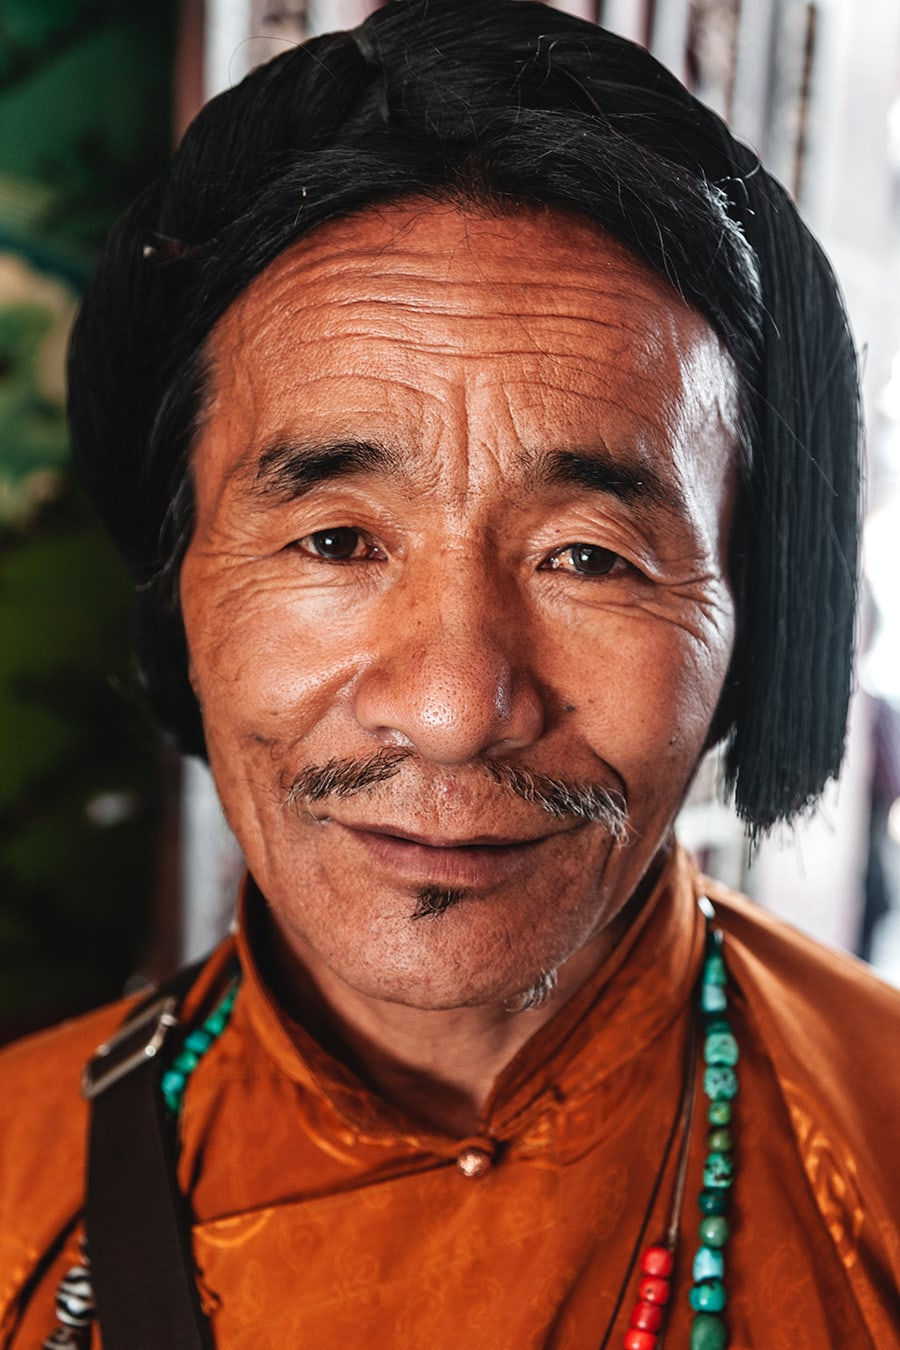 Portrait of a man from the Kham region of Tibet.